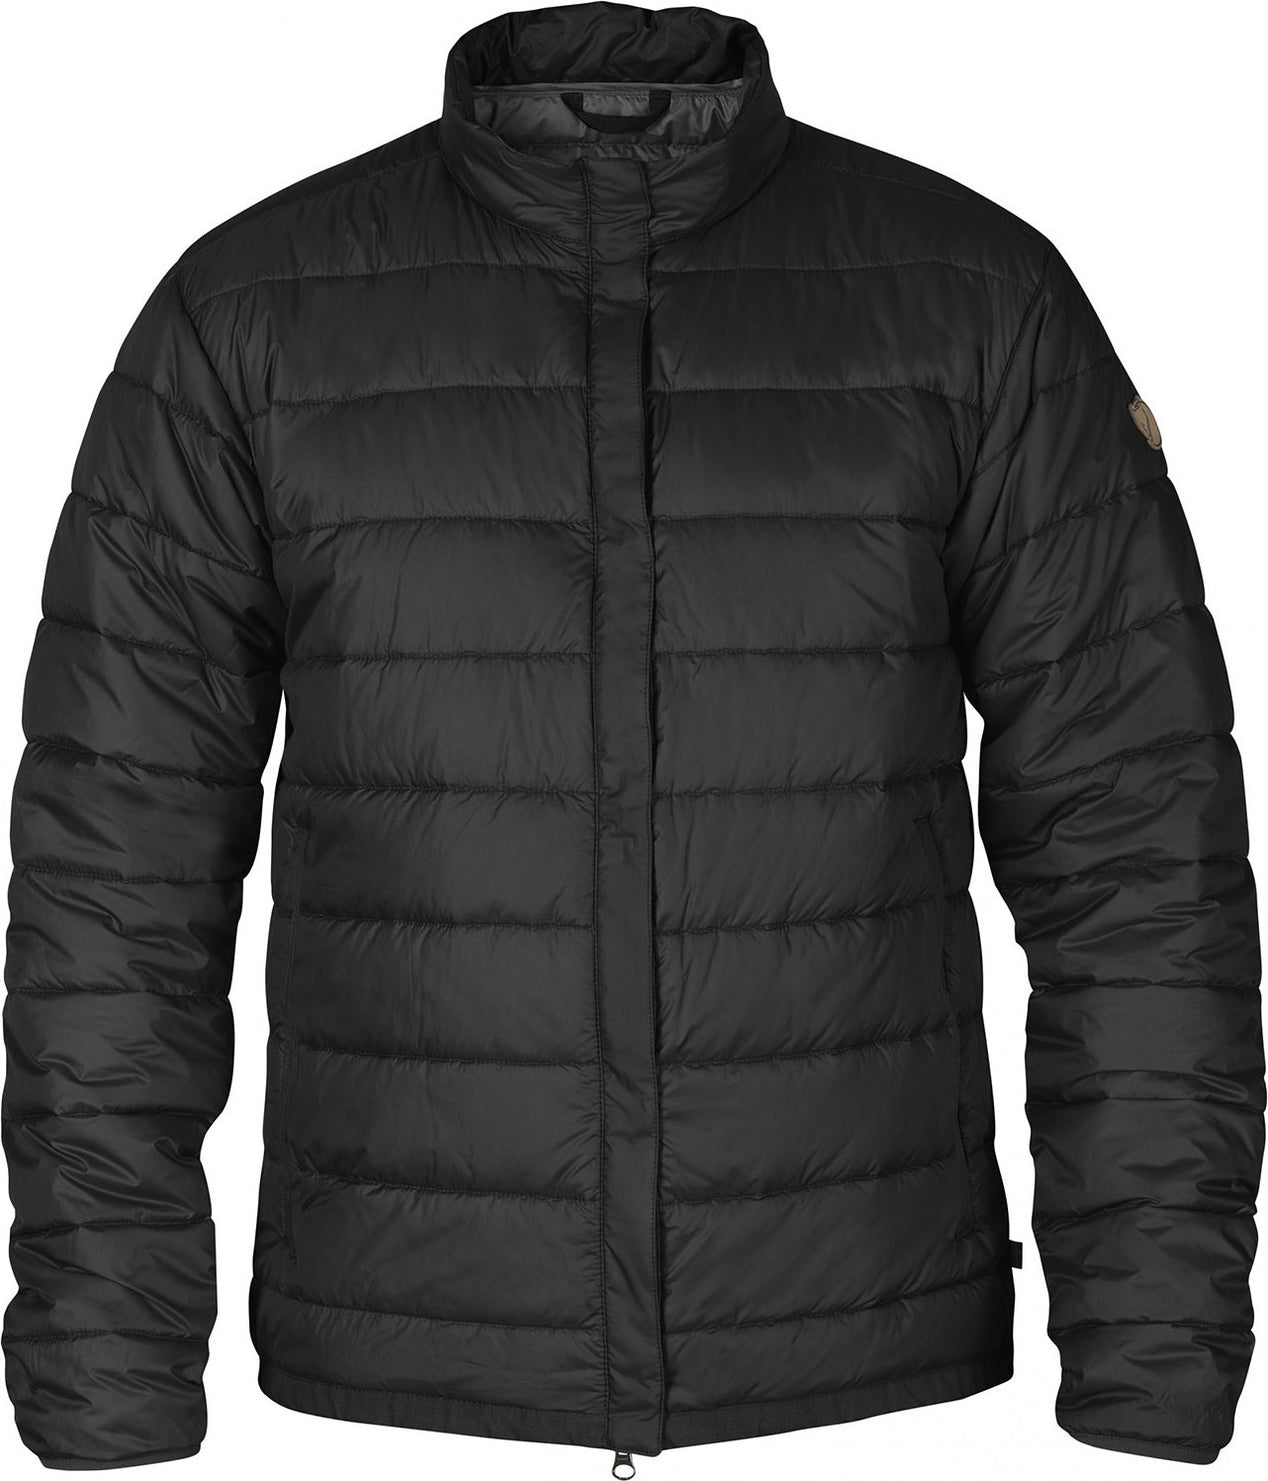 e52c5b1c5a ... Keb Loft Jacket - Men s Black ...